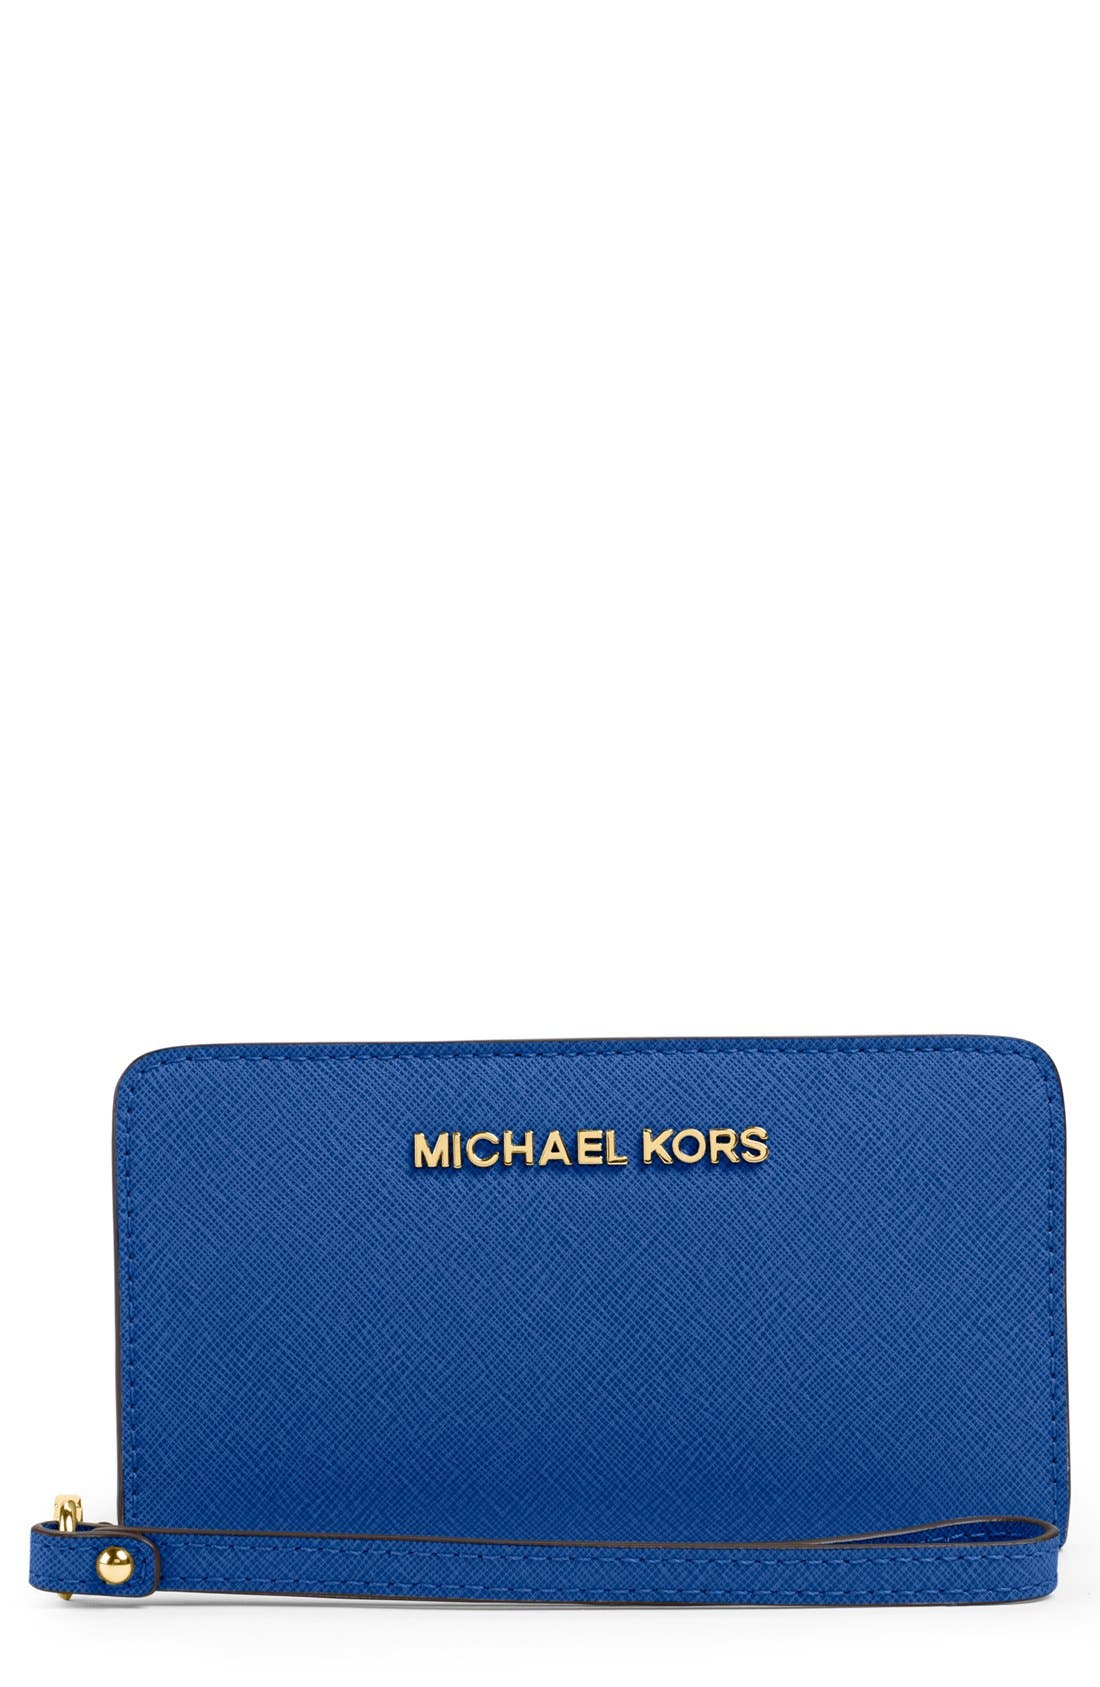 Alternate Image 1 Selected - MICHAEL Michael Kors Saffiano Phone Wallet